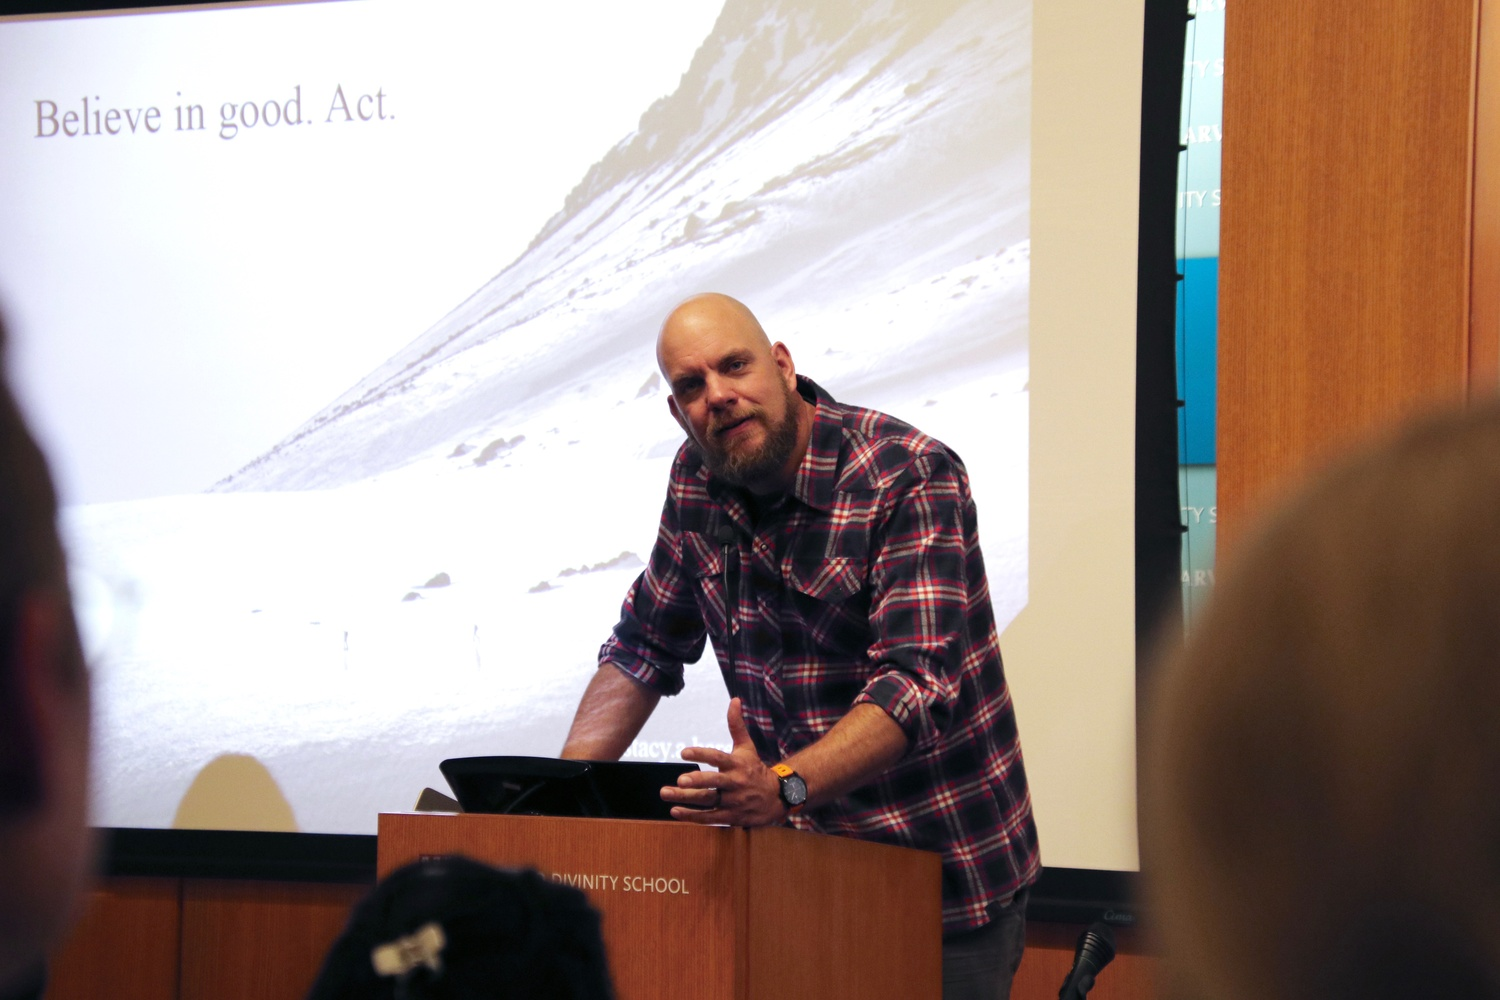 Stacy A. Bare, Founder of Adventure Not War and National Geographic Adventurer, speaks about his experiences and connection to the outdoors Wednesday evening at Harvard Divinity School.